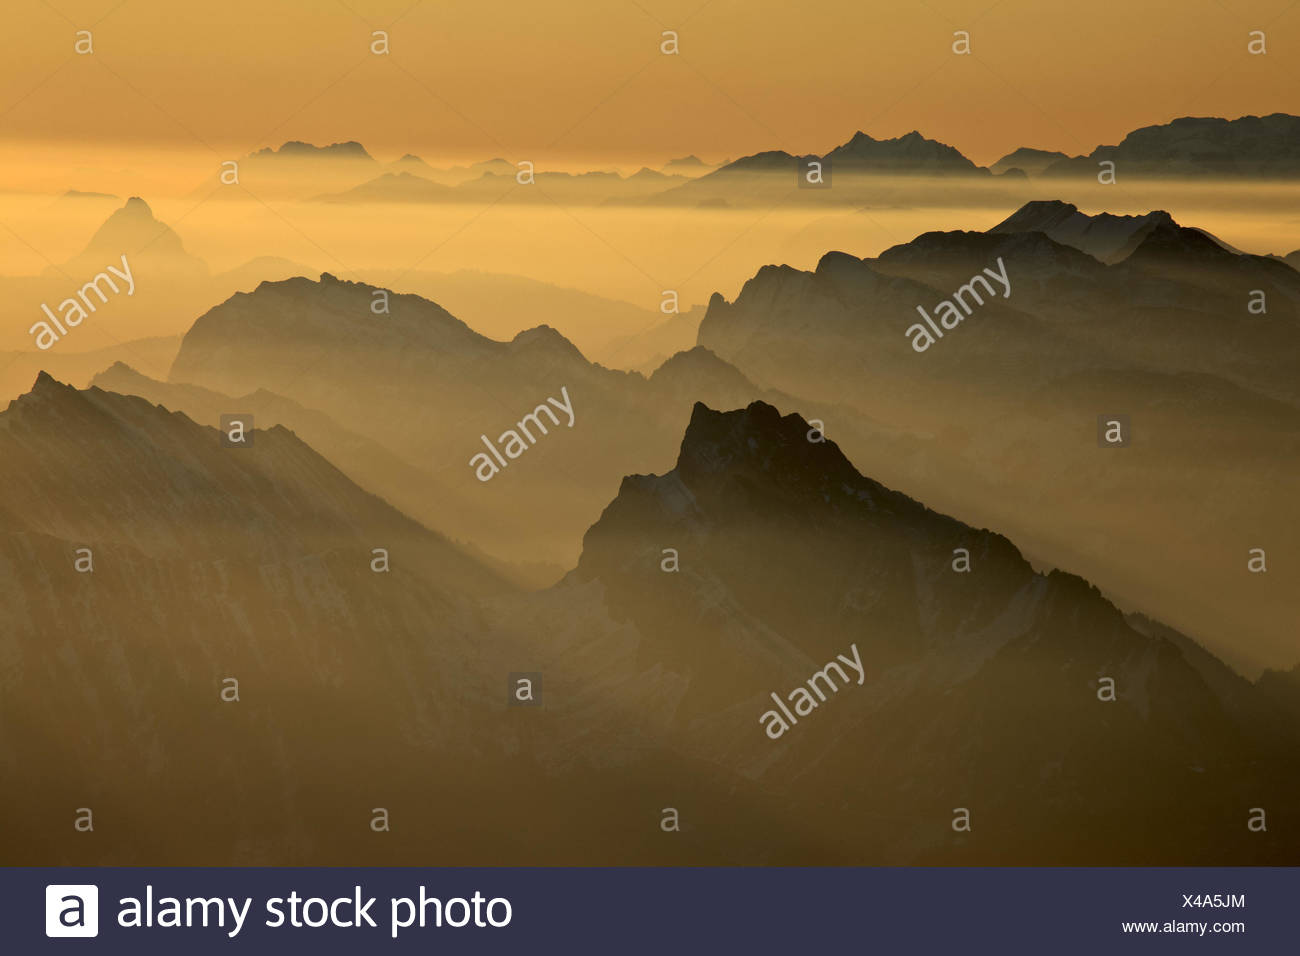 Switzerland, Appenzell, Appenzeller country, alp stone massif, Säntis, view into the direction of west, matt floor, big myths, small myths, spear, - Stock Image